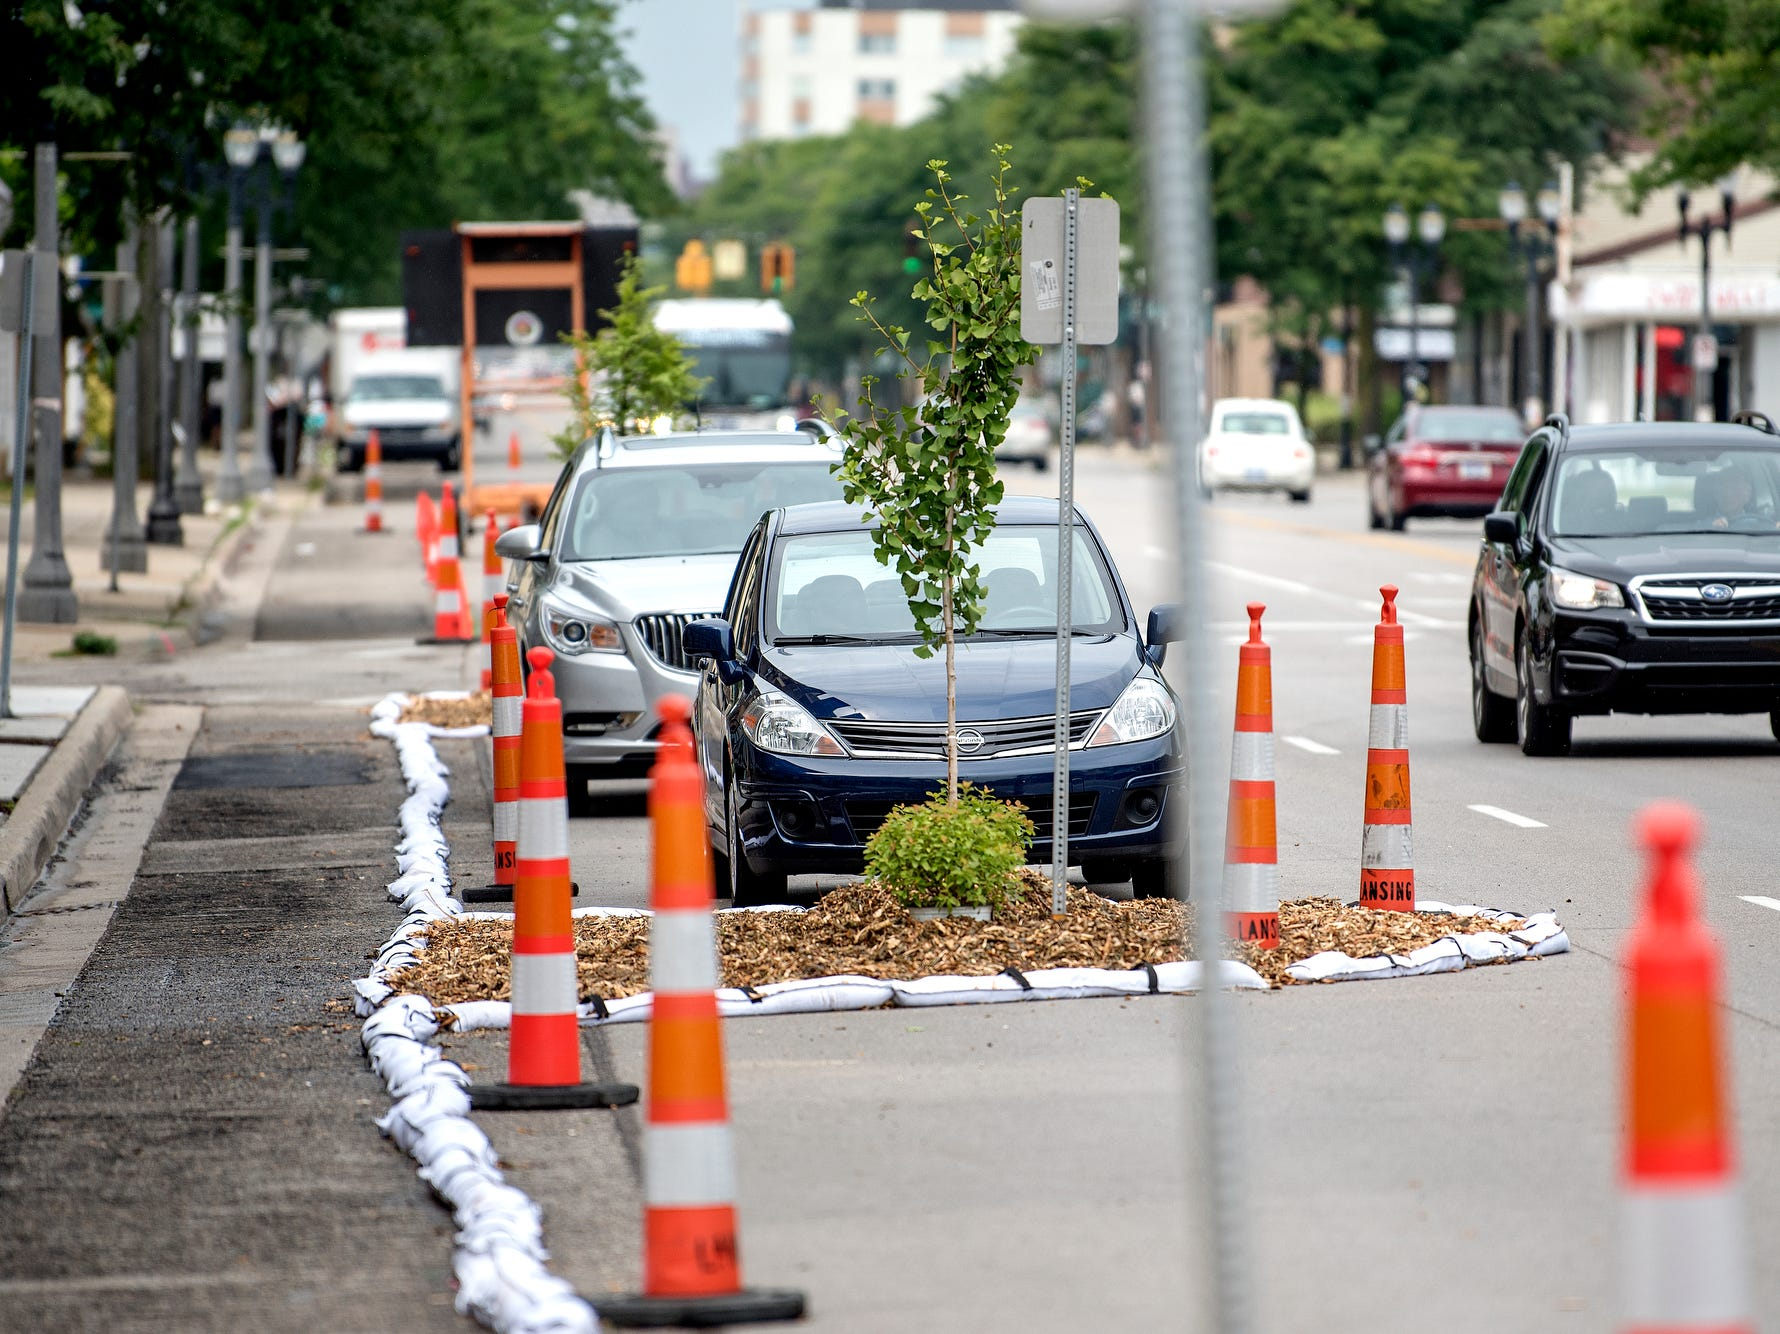 Temporary bike lanes and landscaping in place as part of 'Imagine the Avenue' on Monday, Aug. 6, 2018, at The Venue on Michigan Avenue in Lansing. From Aug. 6-11, the 2000 block of Michigan Avenue will be displaying temporary street design changes including protected bike lanes, expanded sidewalks and enhanced bus stops.